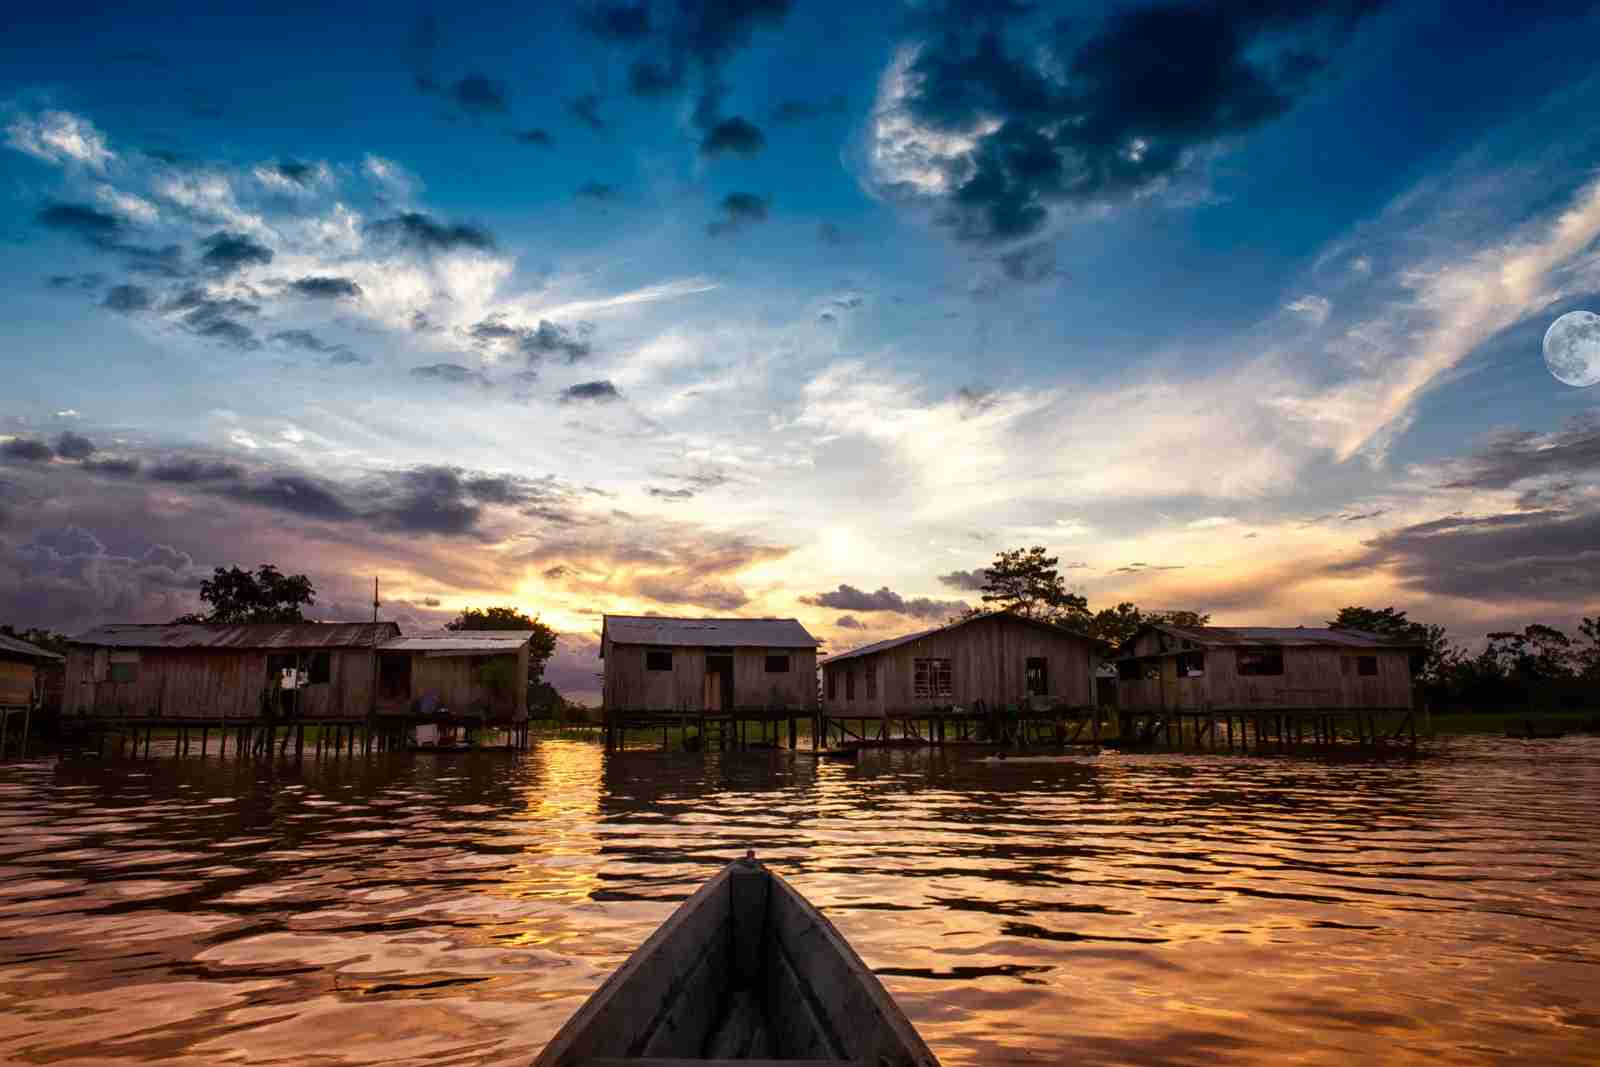 Near the town of Leticia, Colombia from the Amazon River. (Photo by Kim Schandorff / Getty Images)